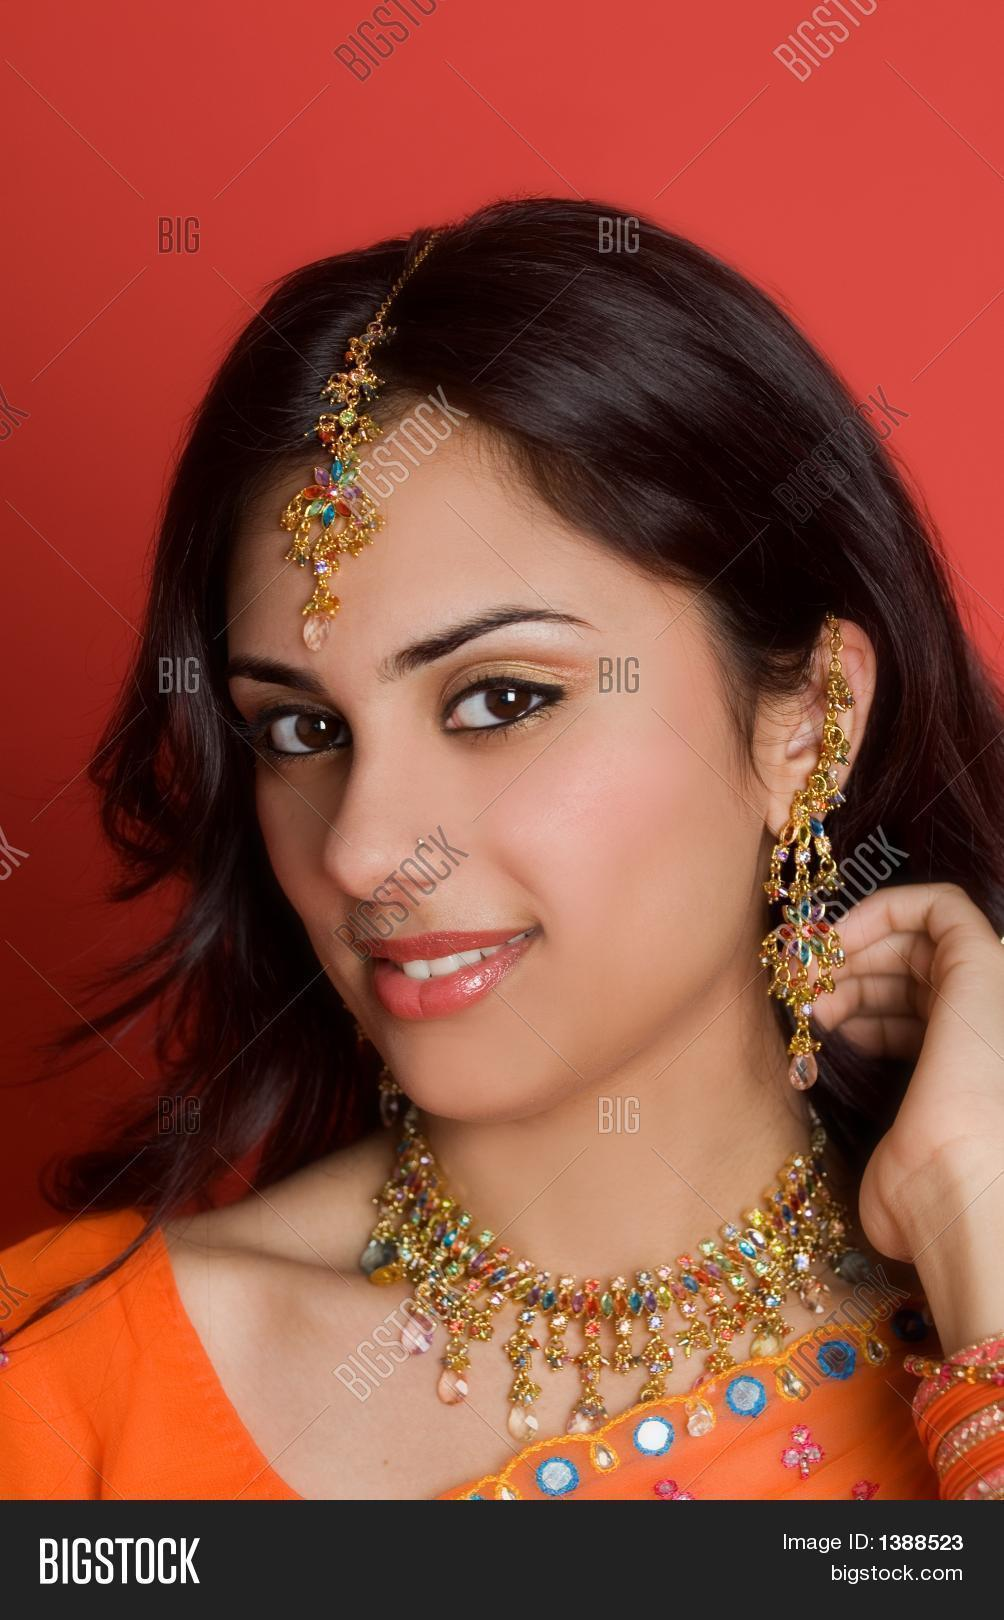 porum hindu single women Asian dating events and apps portal for indian singles living in the uk we cater for british asian dating who are from an indian origin.